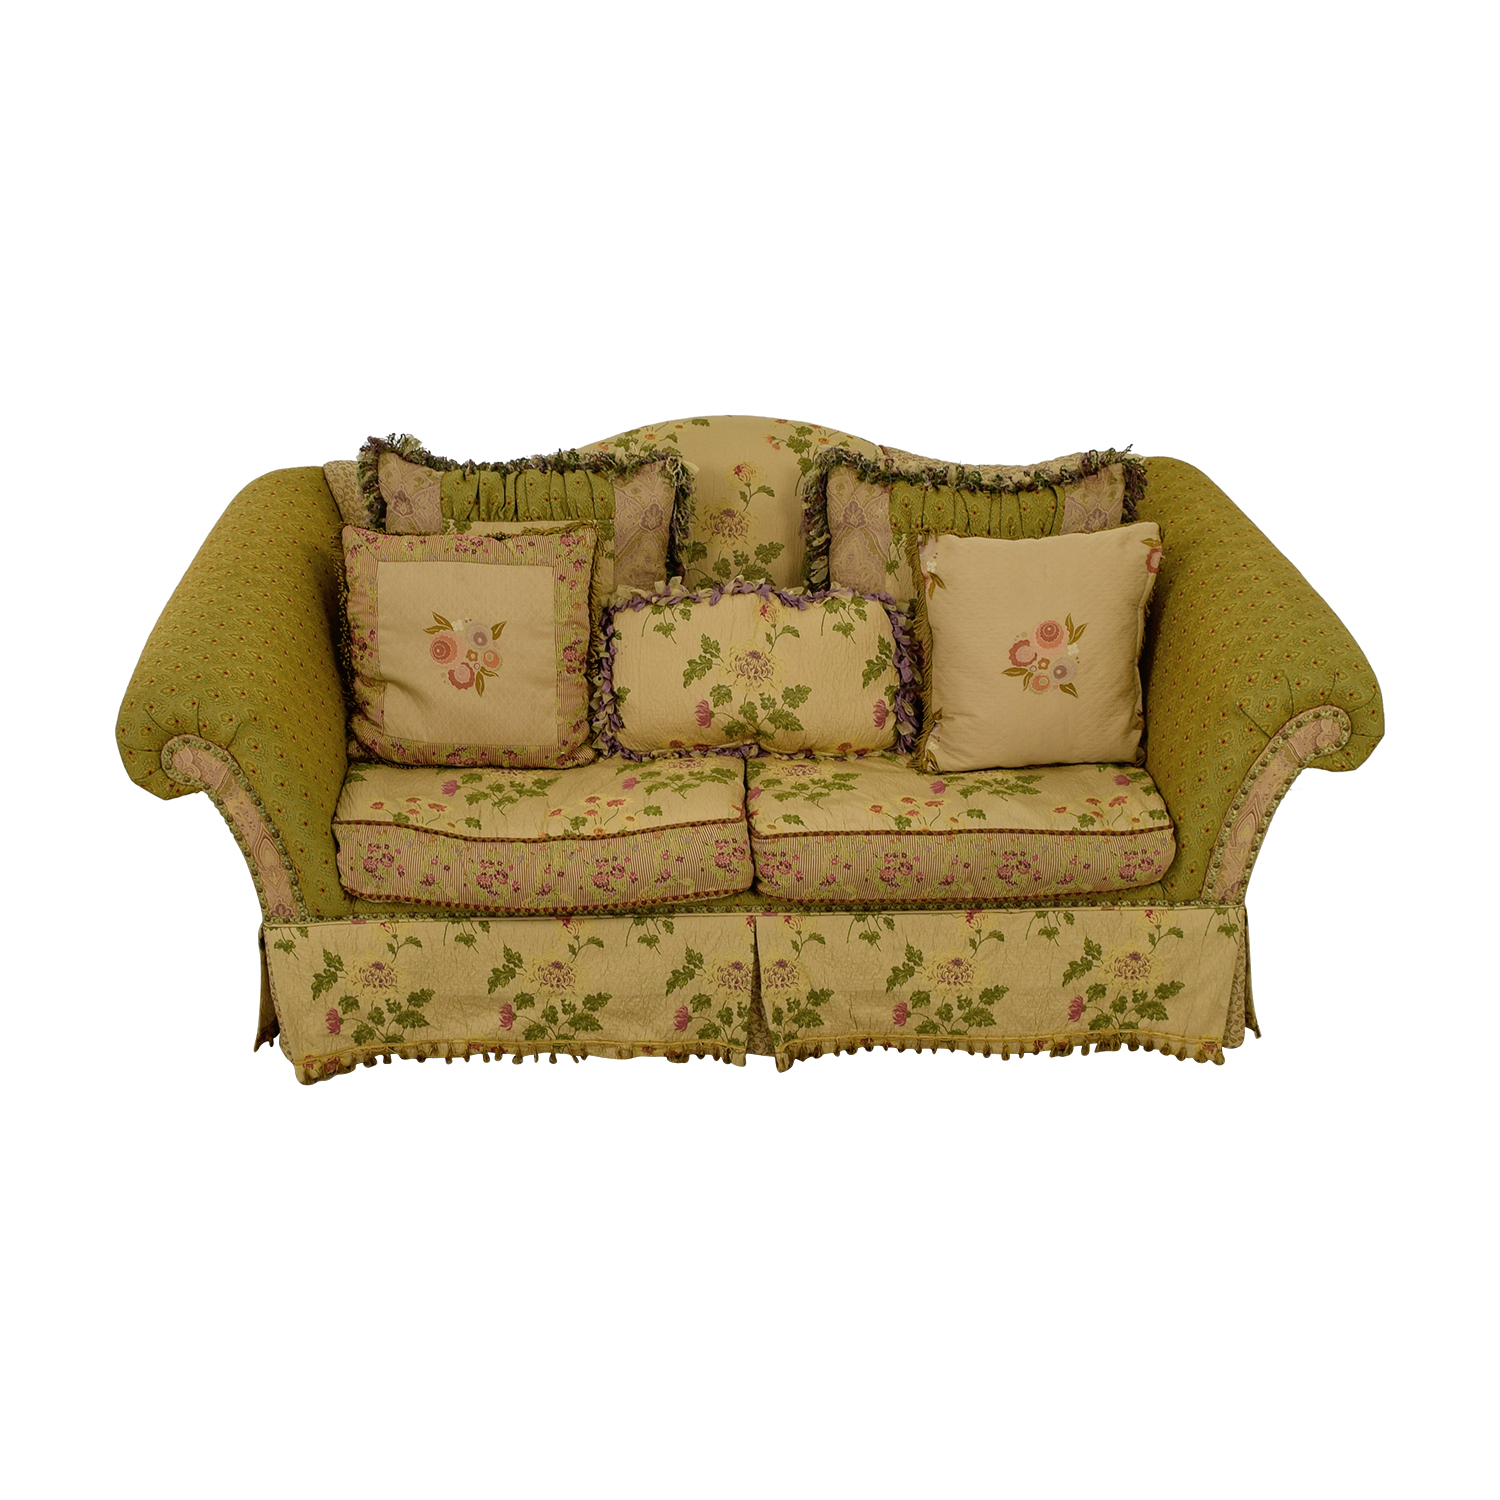 Domain Domain Down Filled Floral Green Two-Cushion Sofa price